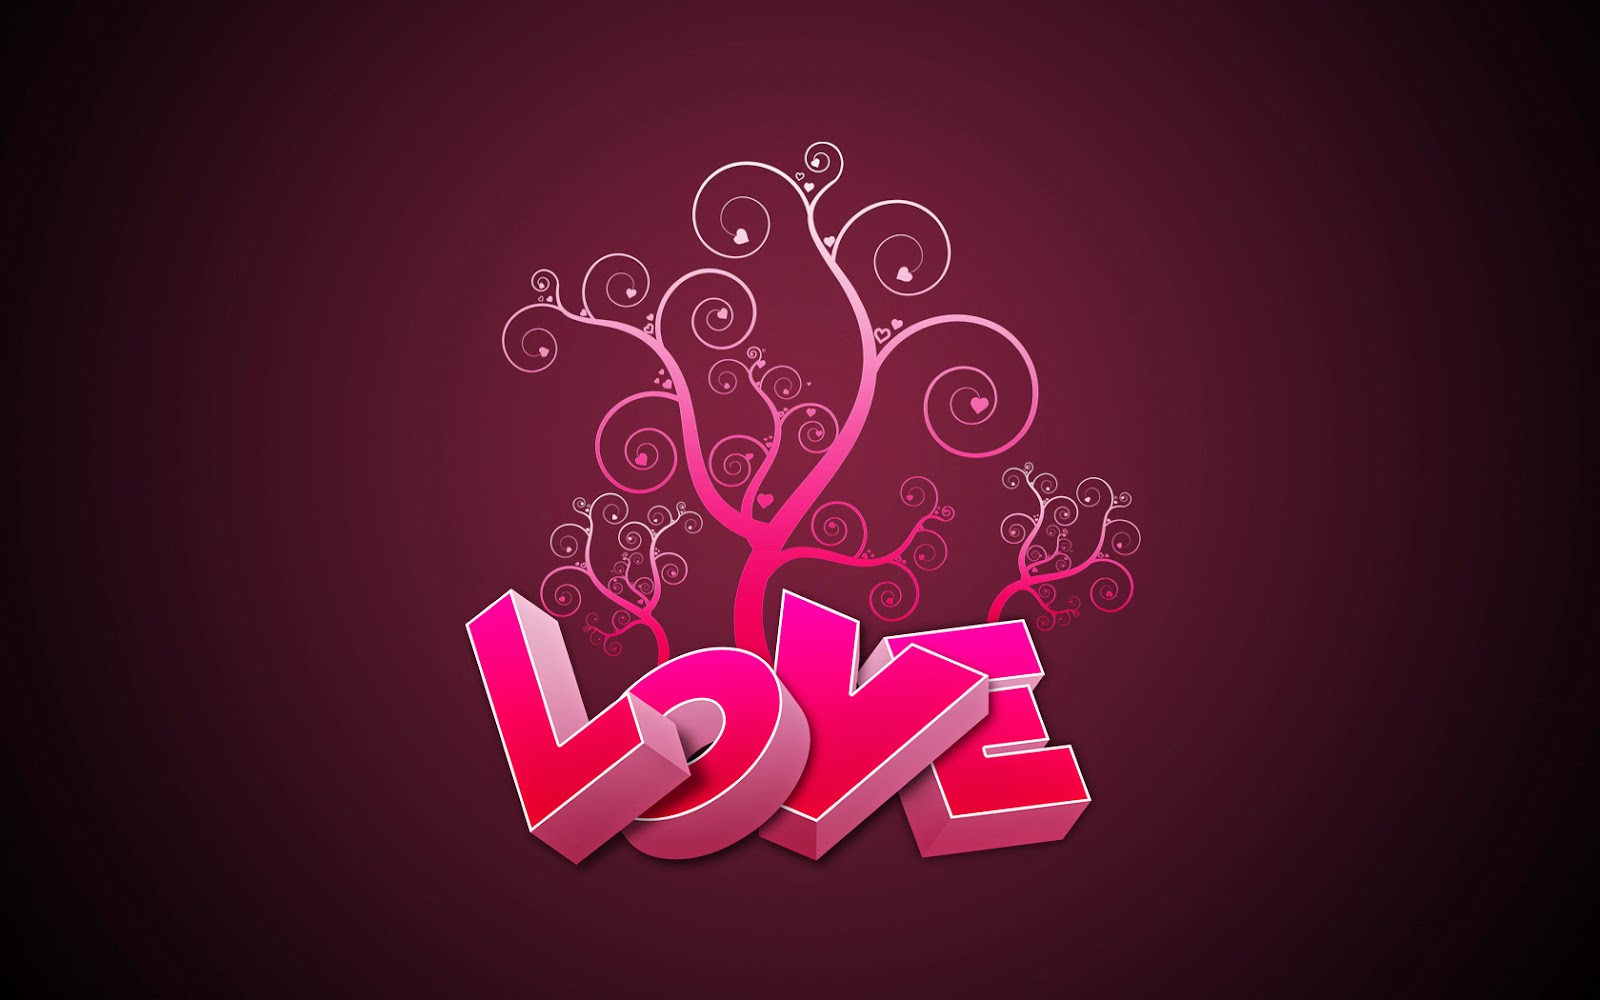 Love HD desktop wallpaper Picture Gallery